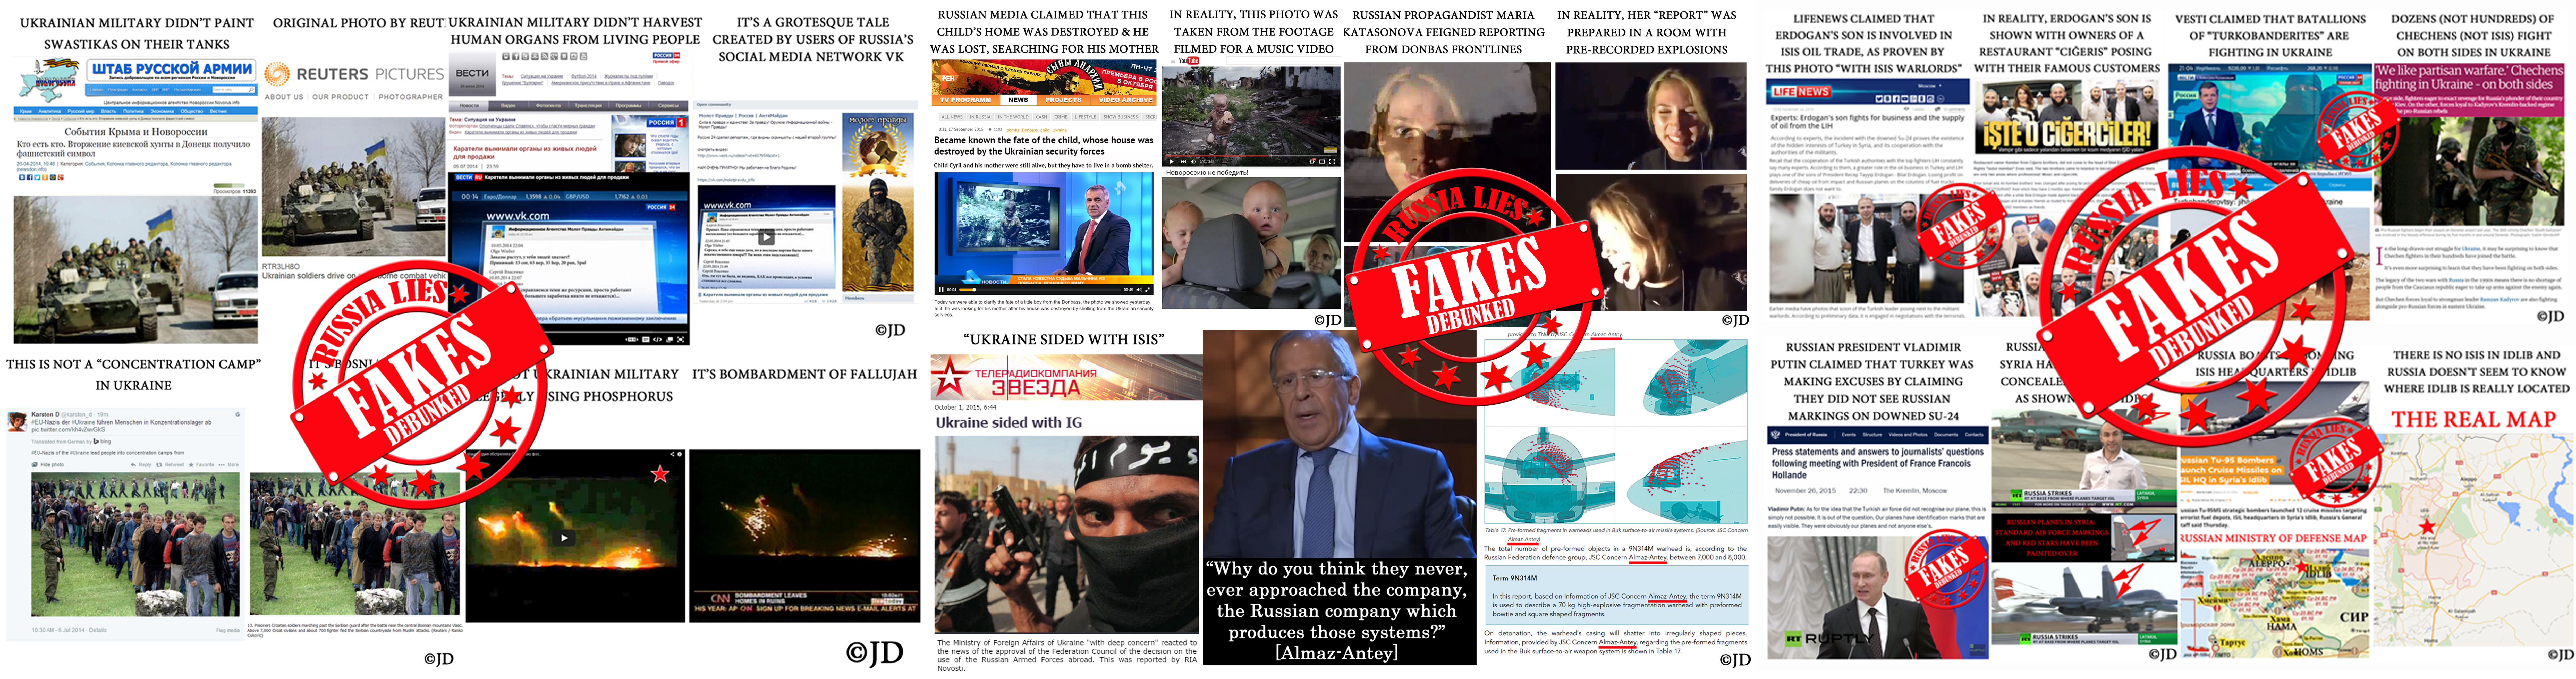 RUSSIA LIES COMPILATION BACKGROUND PIC 2